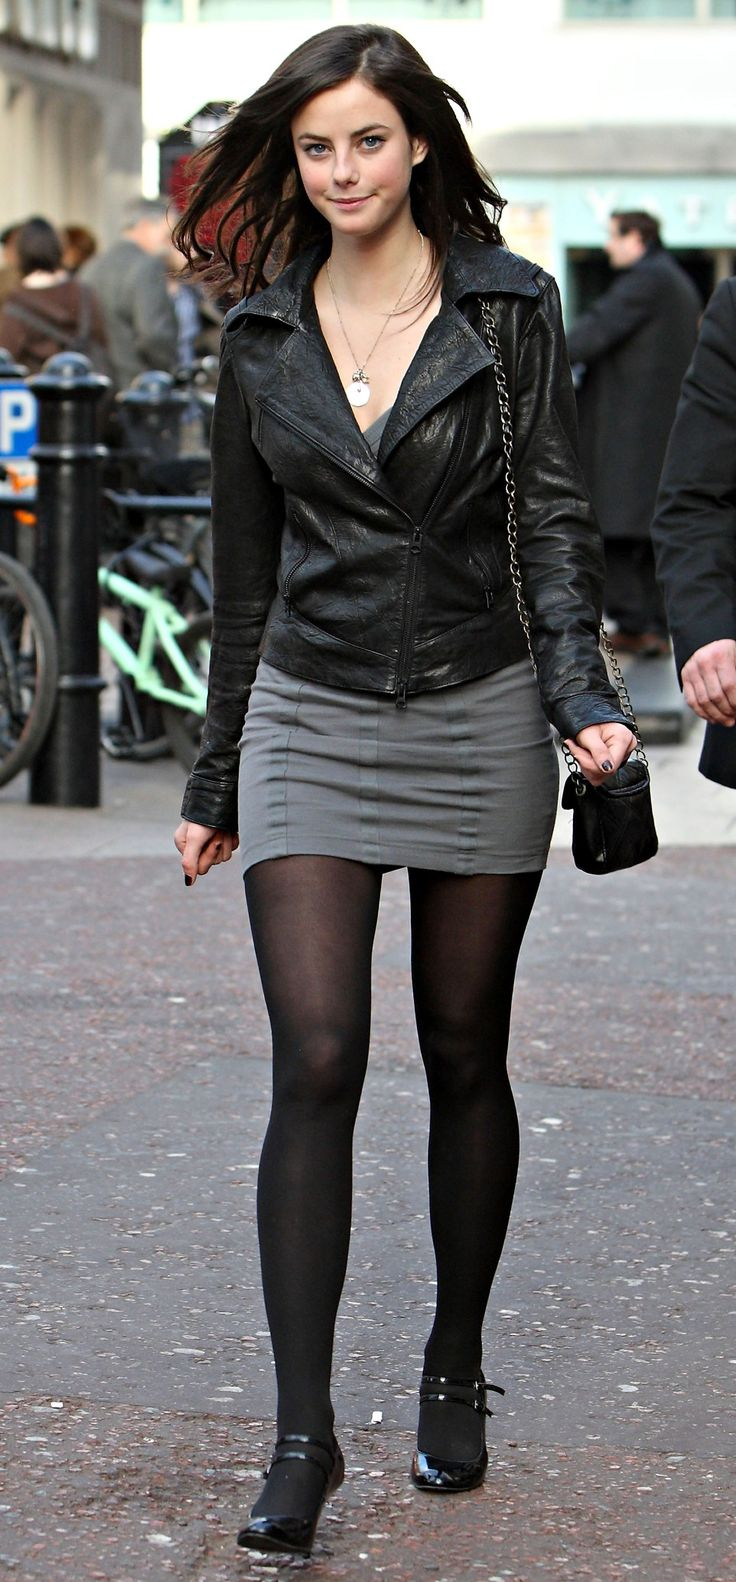 Kaya Scodelario black leather jacket, gray minidress and black strappy heels